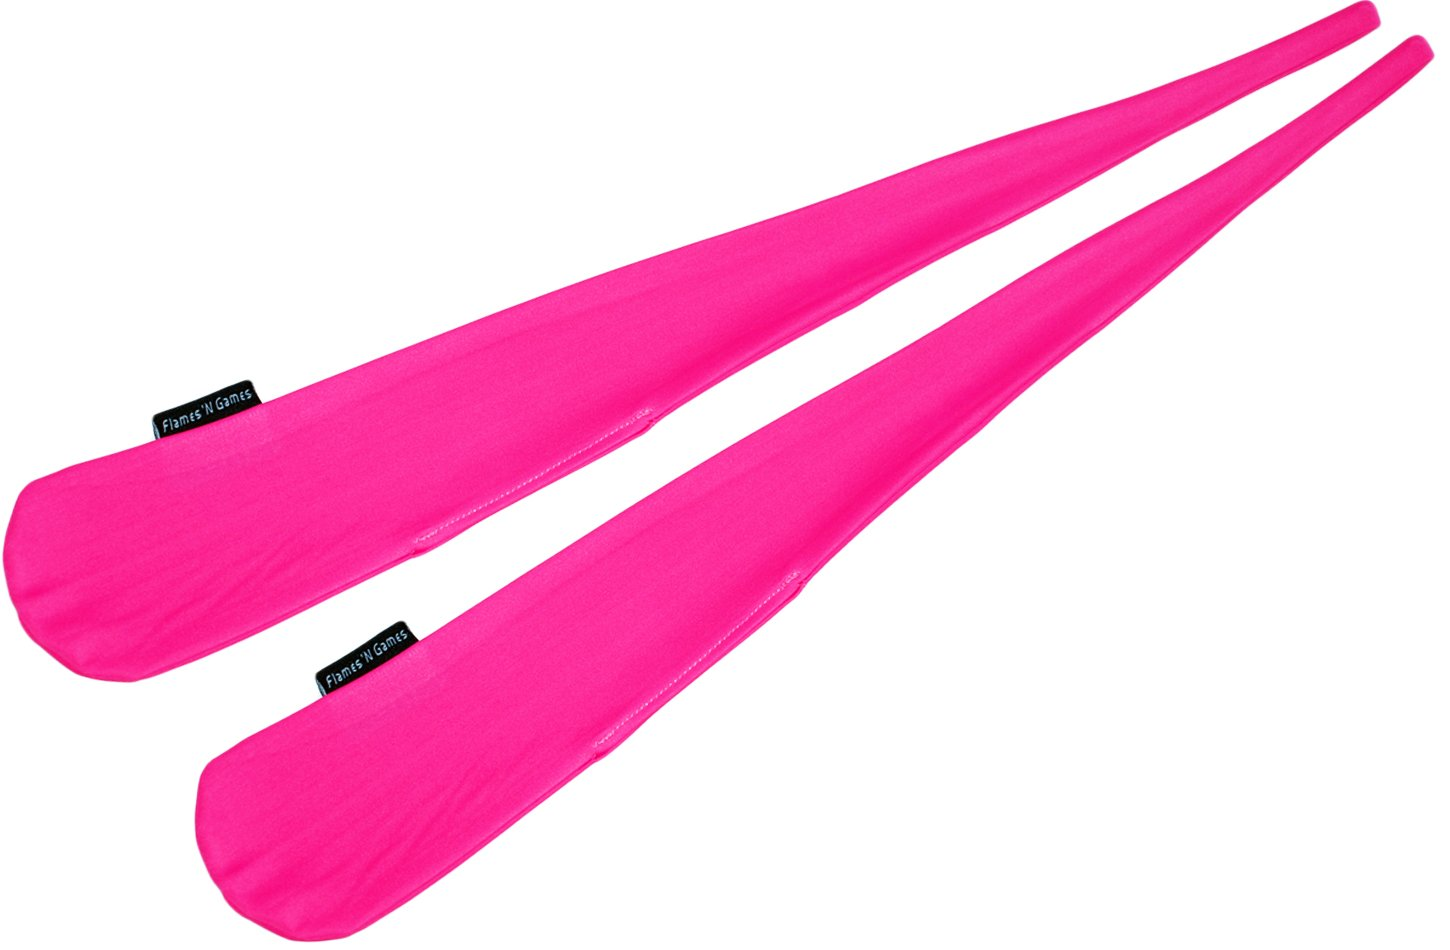 Pro Sock Poi (PINK) Flames N Games Pro Spinning Poi Socks - Pair of Quality Stretchy Lycra Poi Socks.